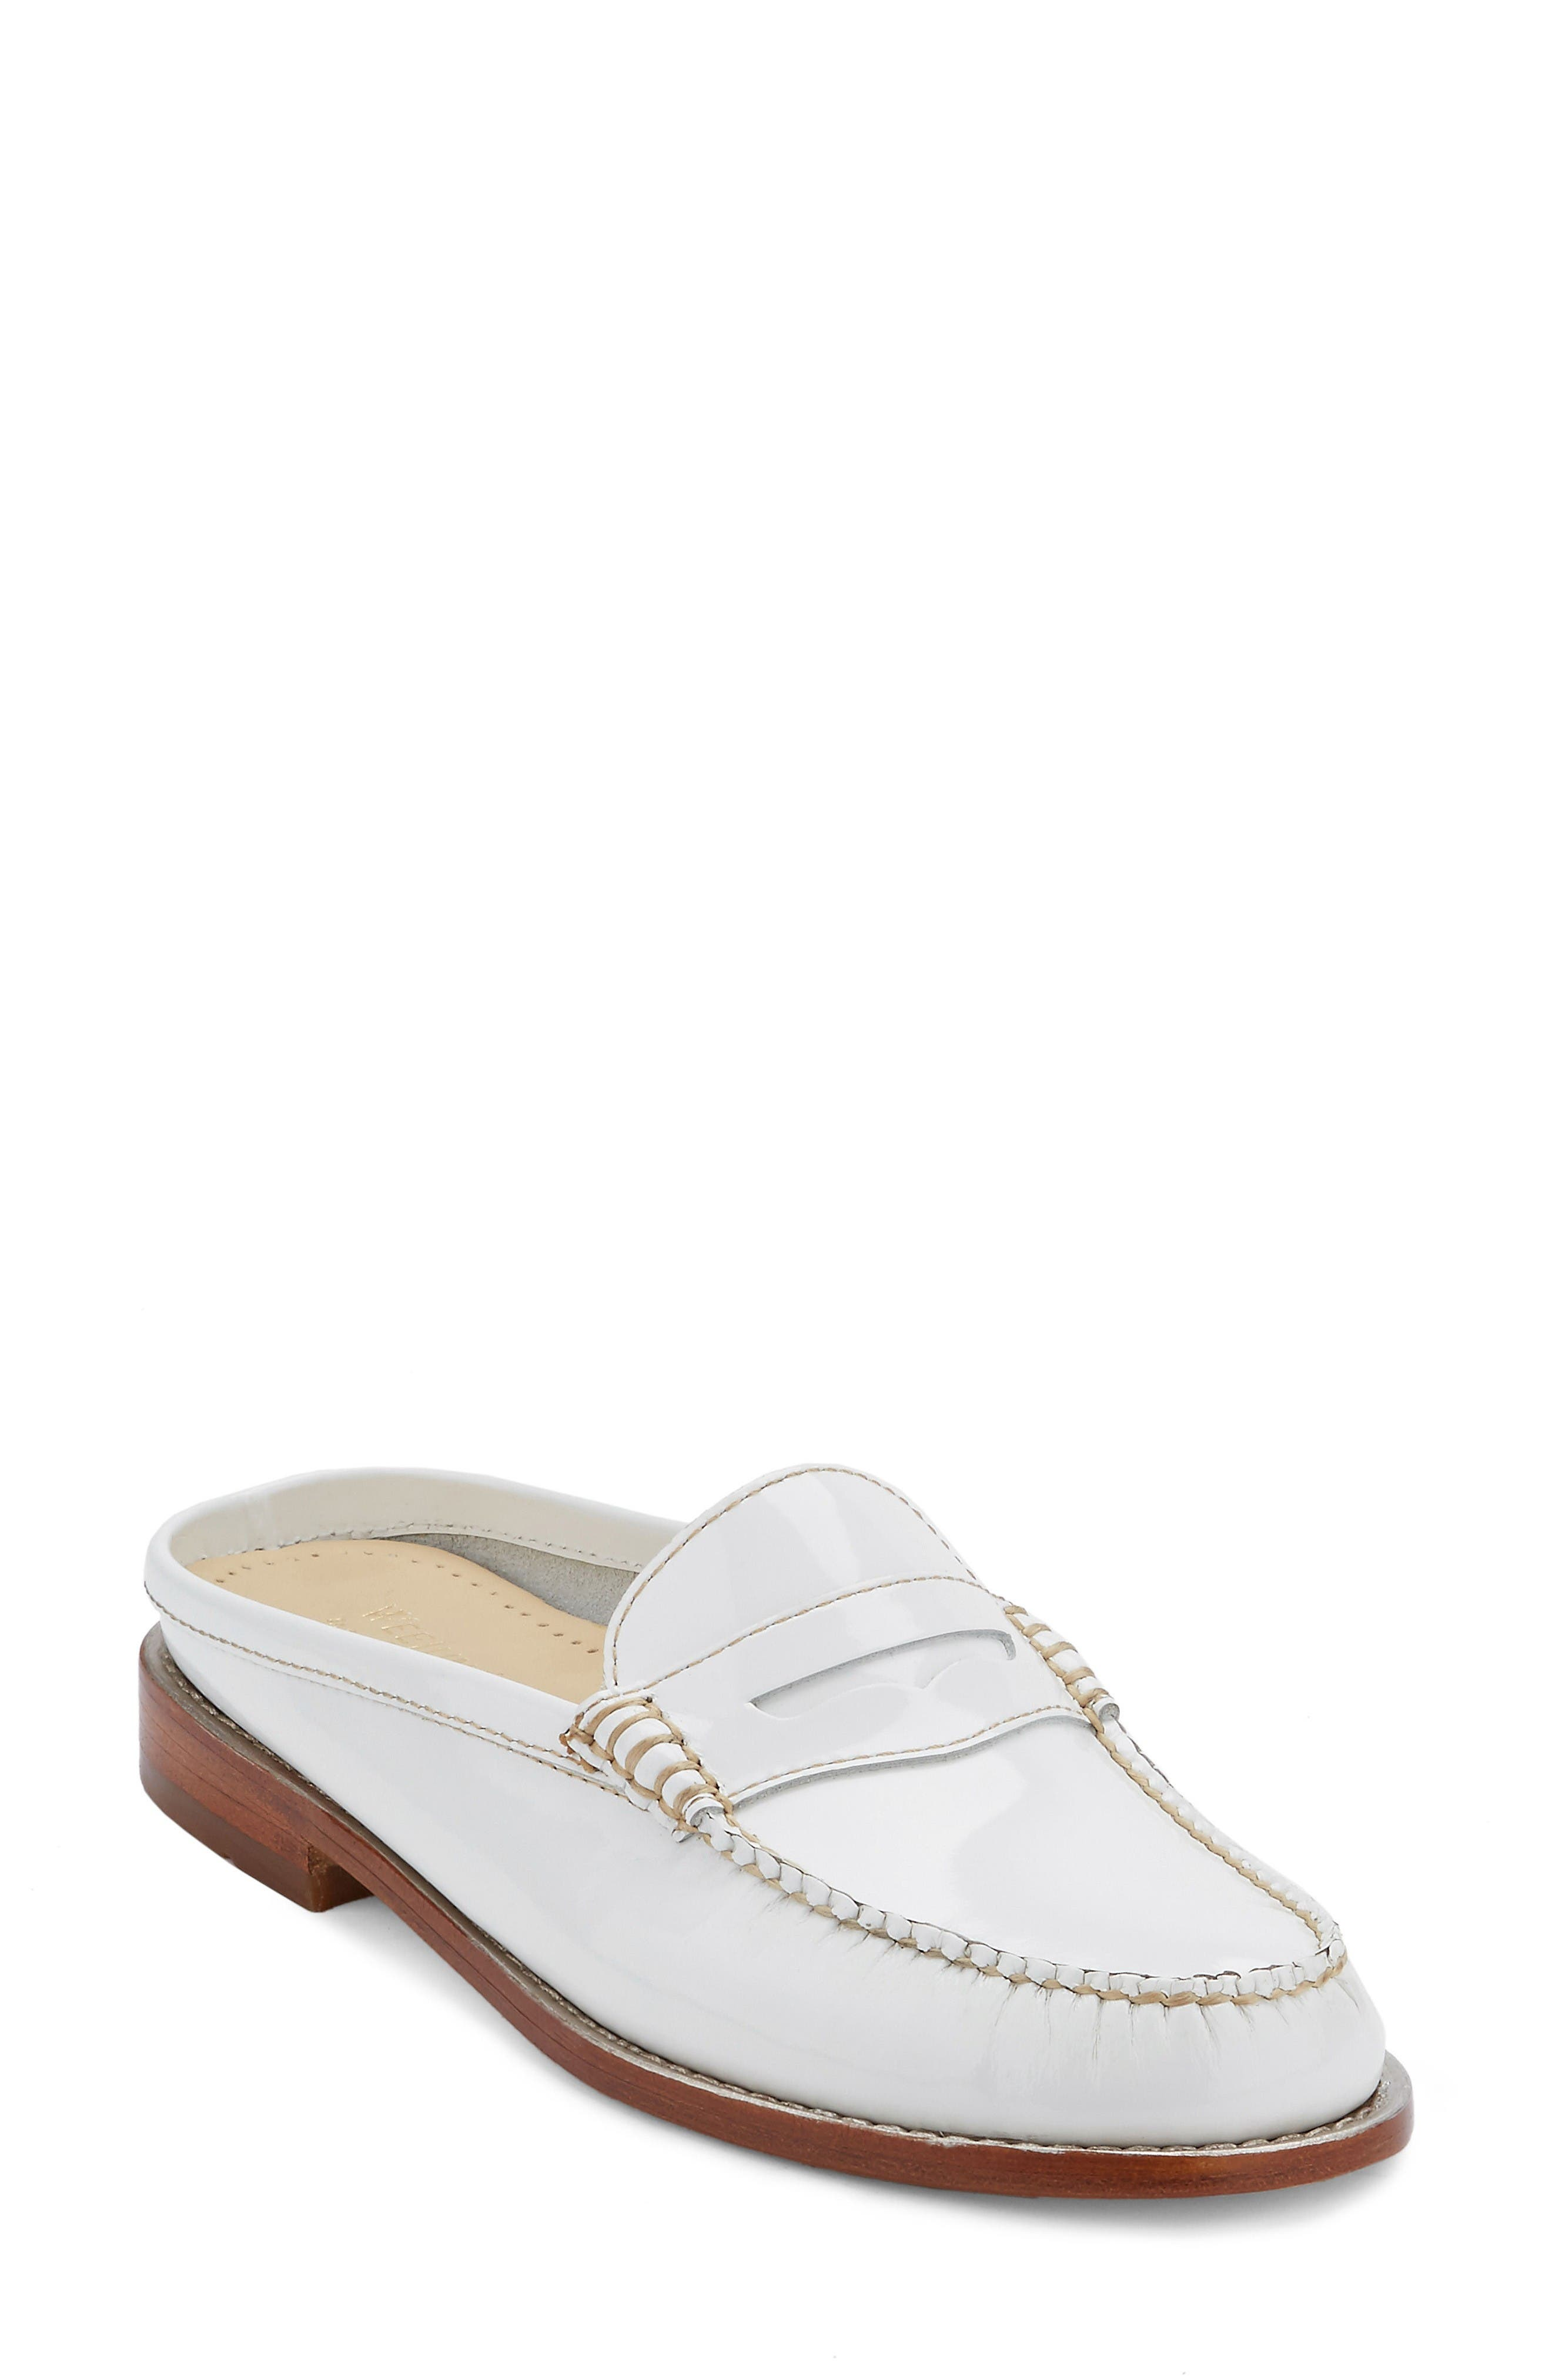 Wynn Loafer Mule,                             Main thumbnail 1, color,                             White Leather